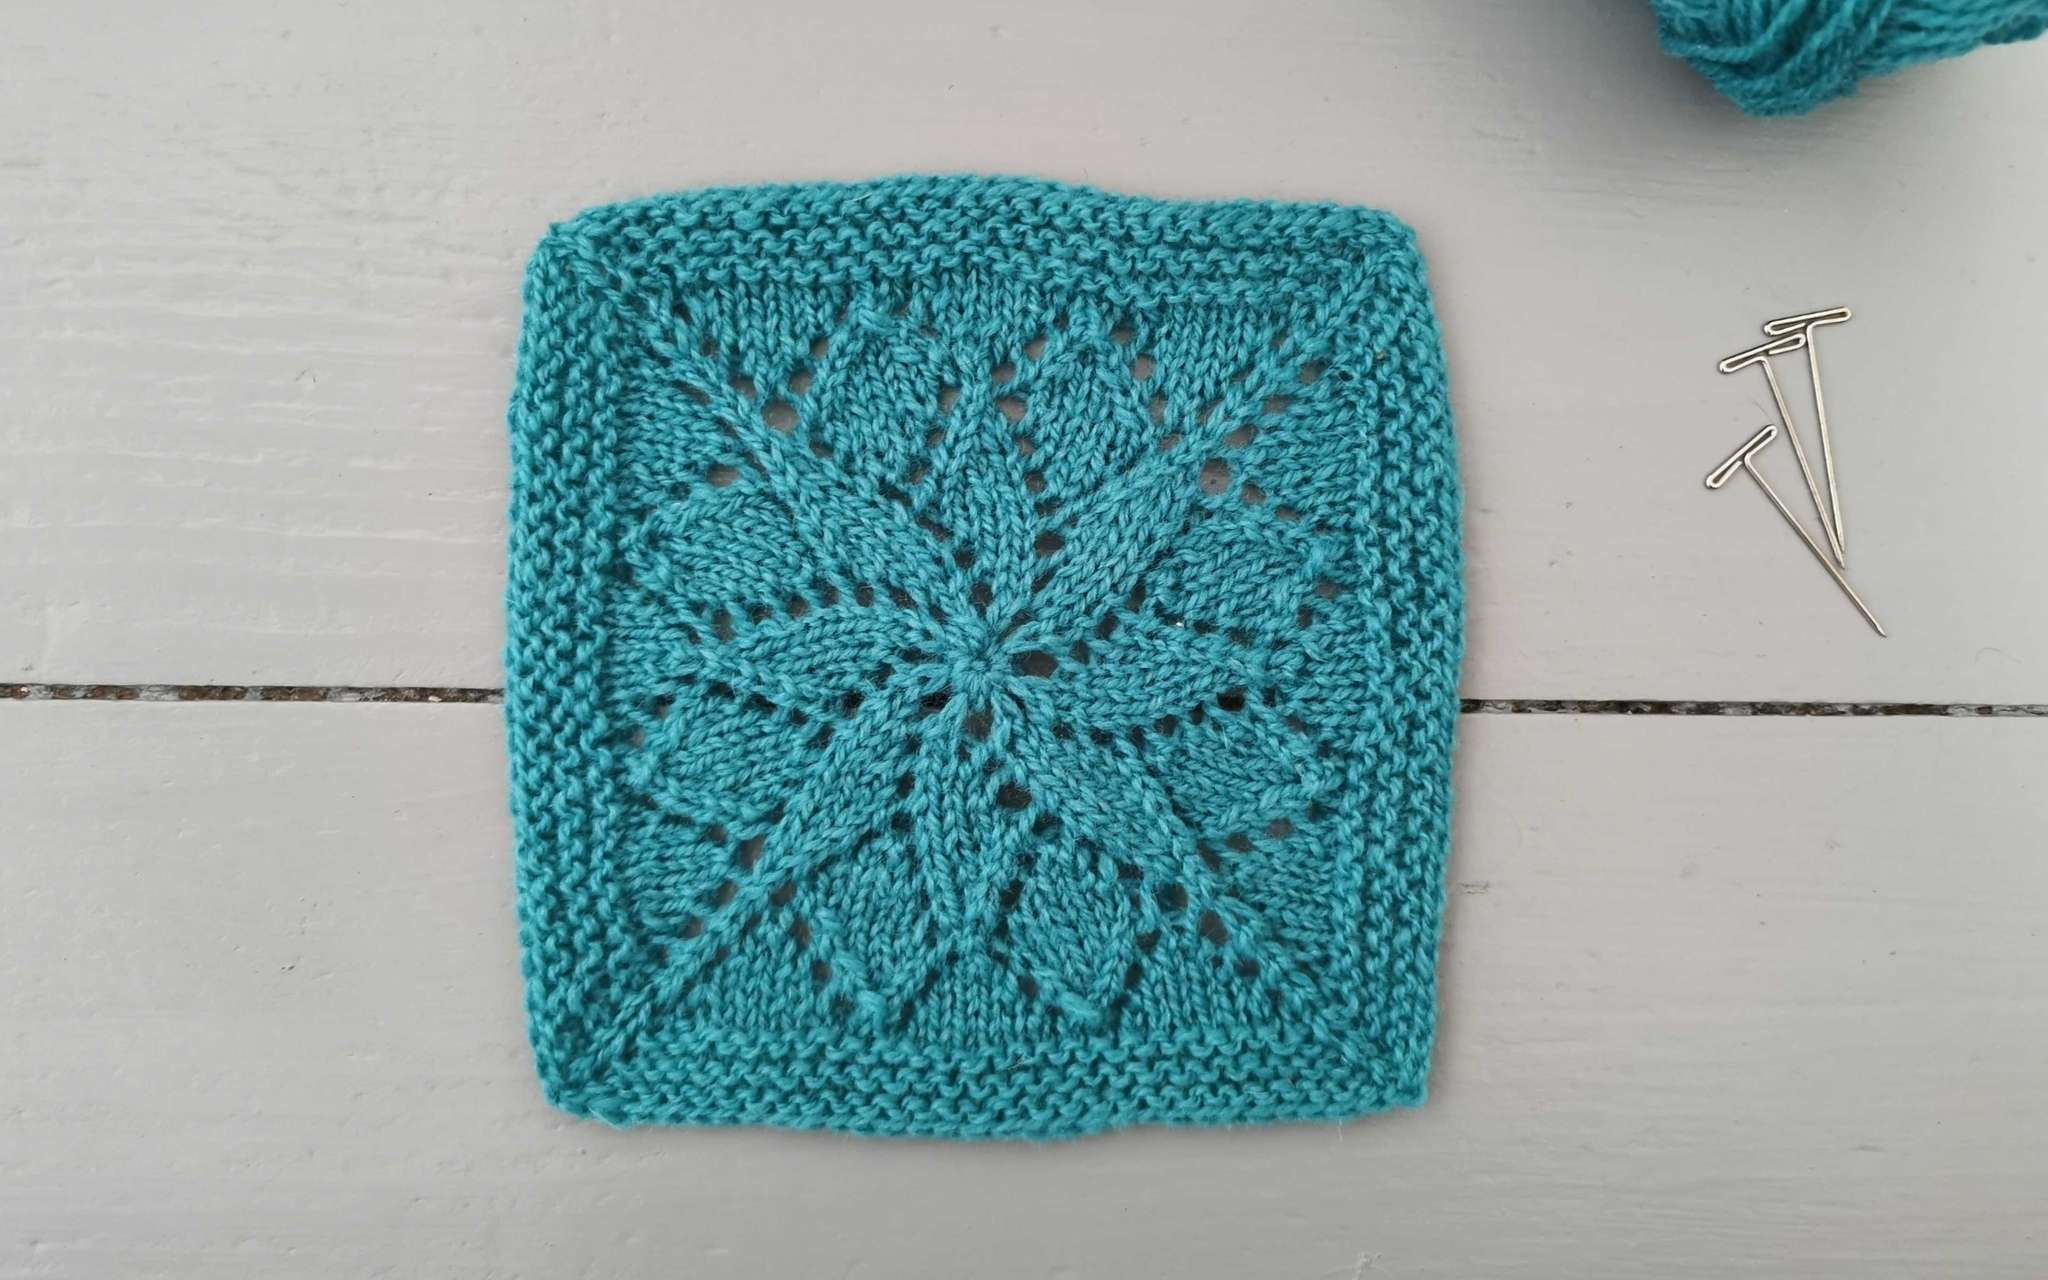 a square lace swatch of knitting, with three t-pins to the right and a glimpse of the ball of yarn used.